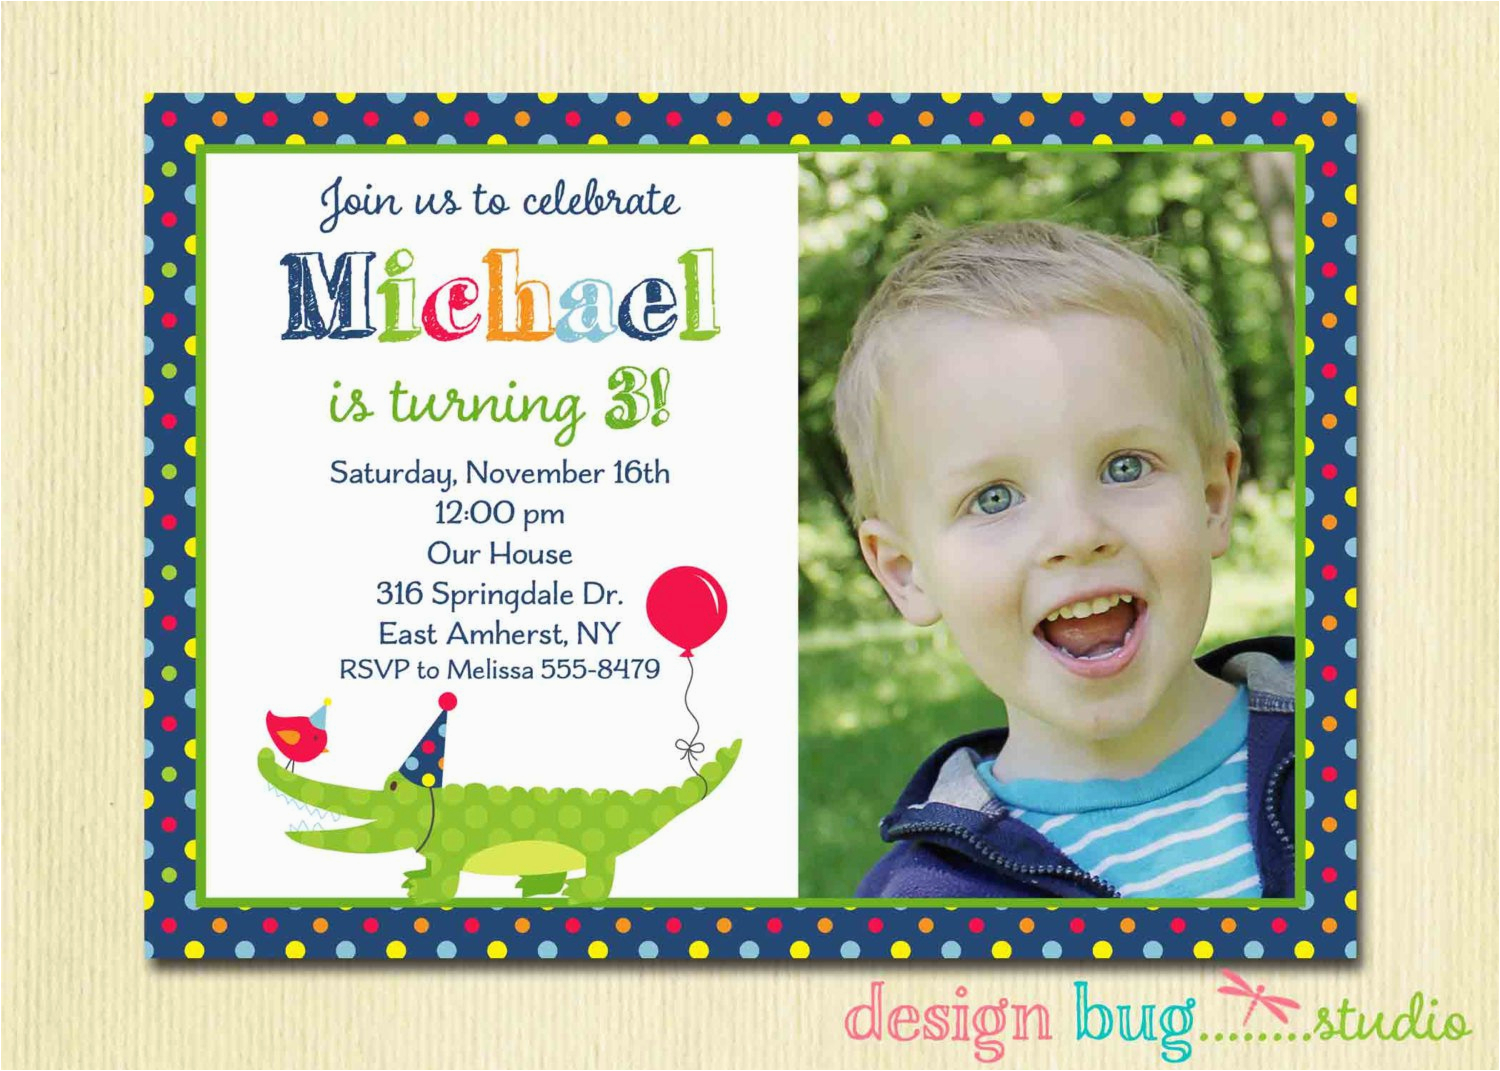 Birthday Invitation Wording For 3 Year Old Boy BirthdayBuzz